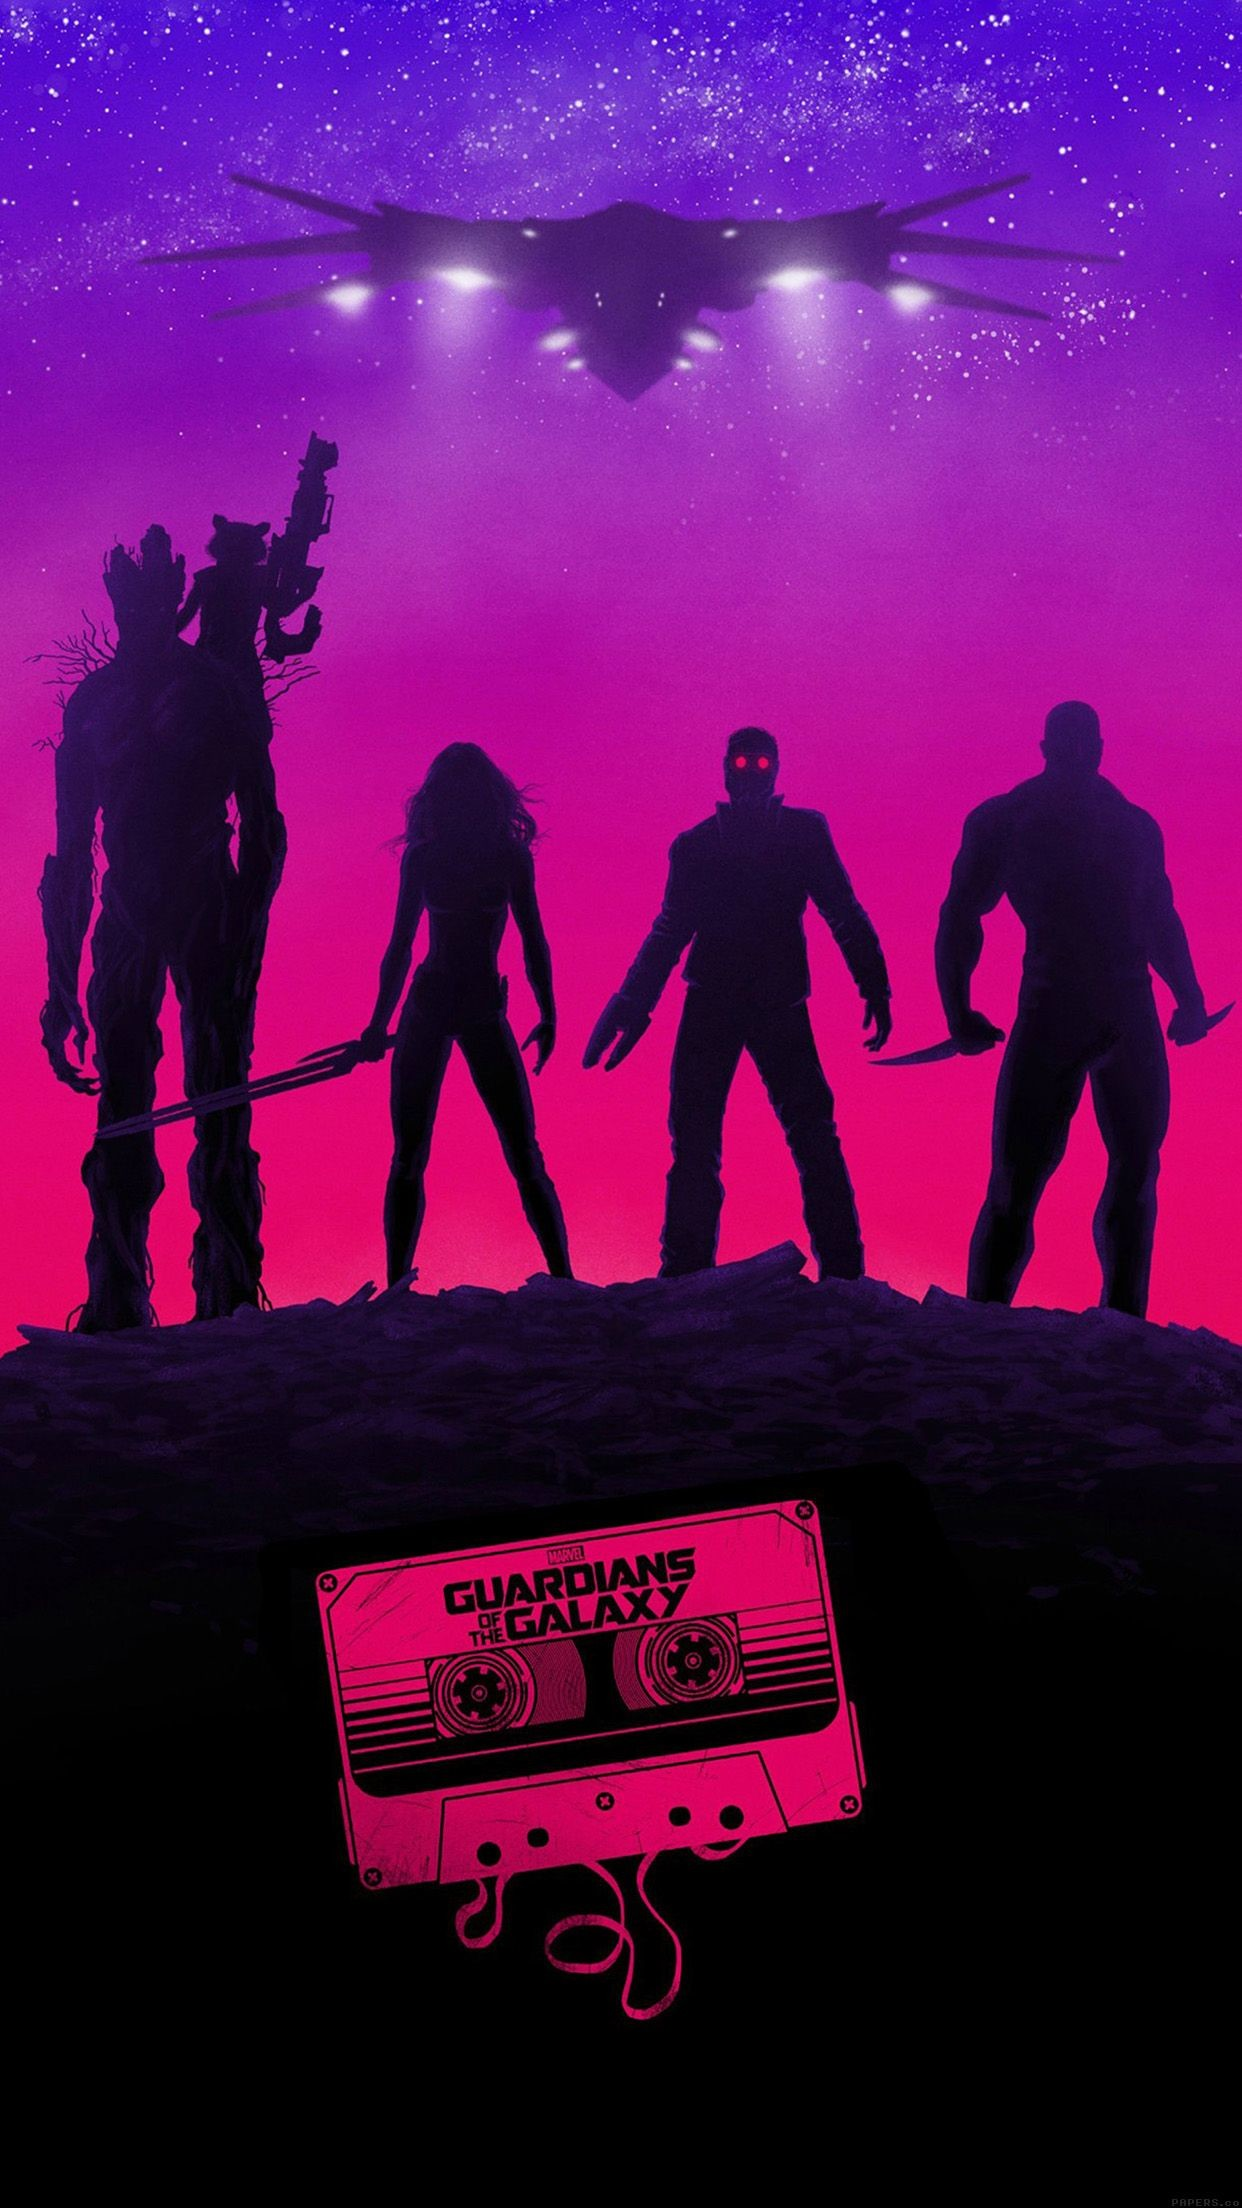 Res: 1242x2208, FBL field trip is finally happening: seein' Guardians of the Galaxy in Imax  And on James Gunn's birthday! Double the special, double the fun.